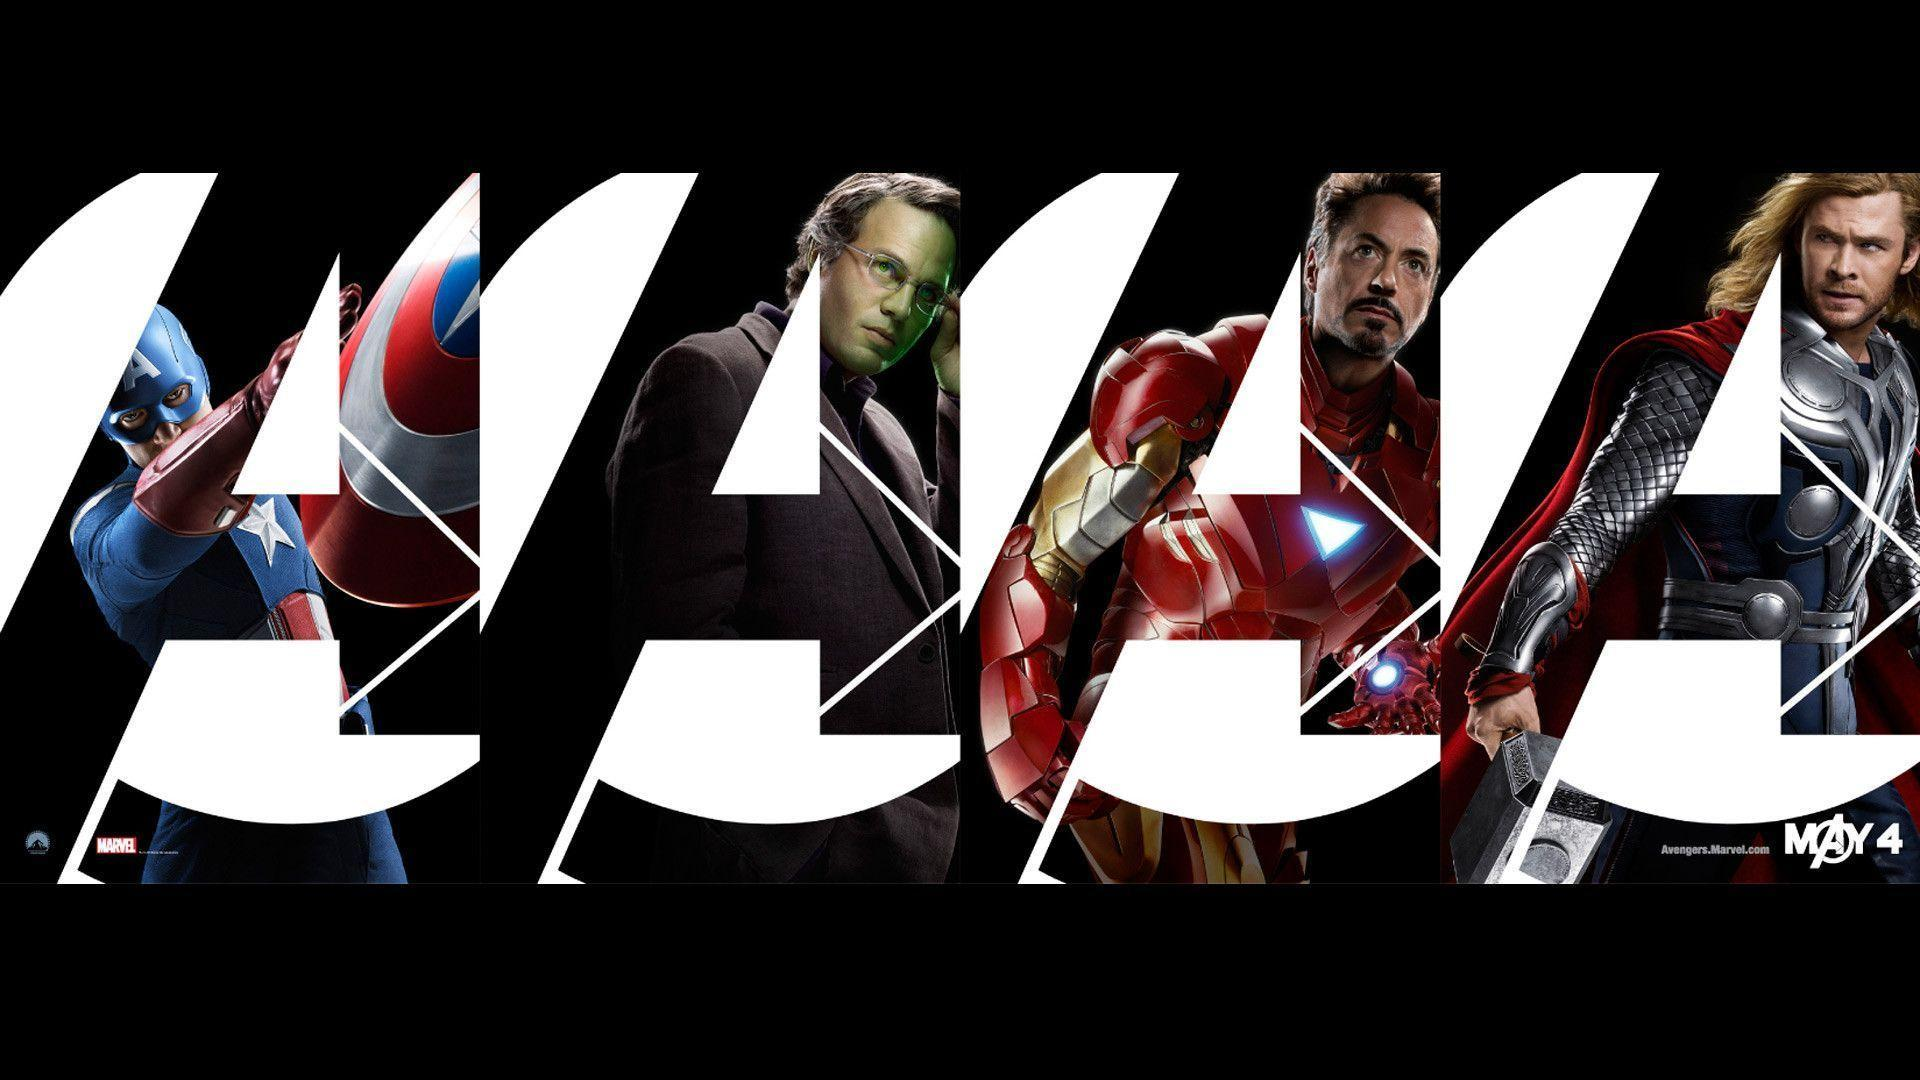 Super Heroes in Avengers Wallpapers